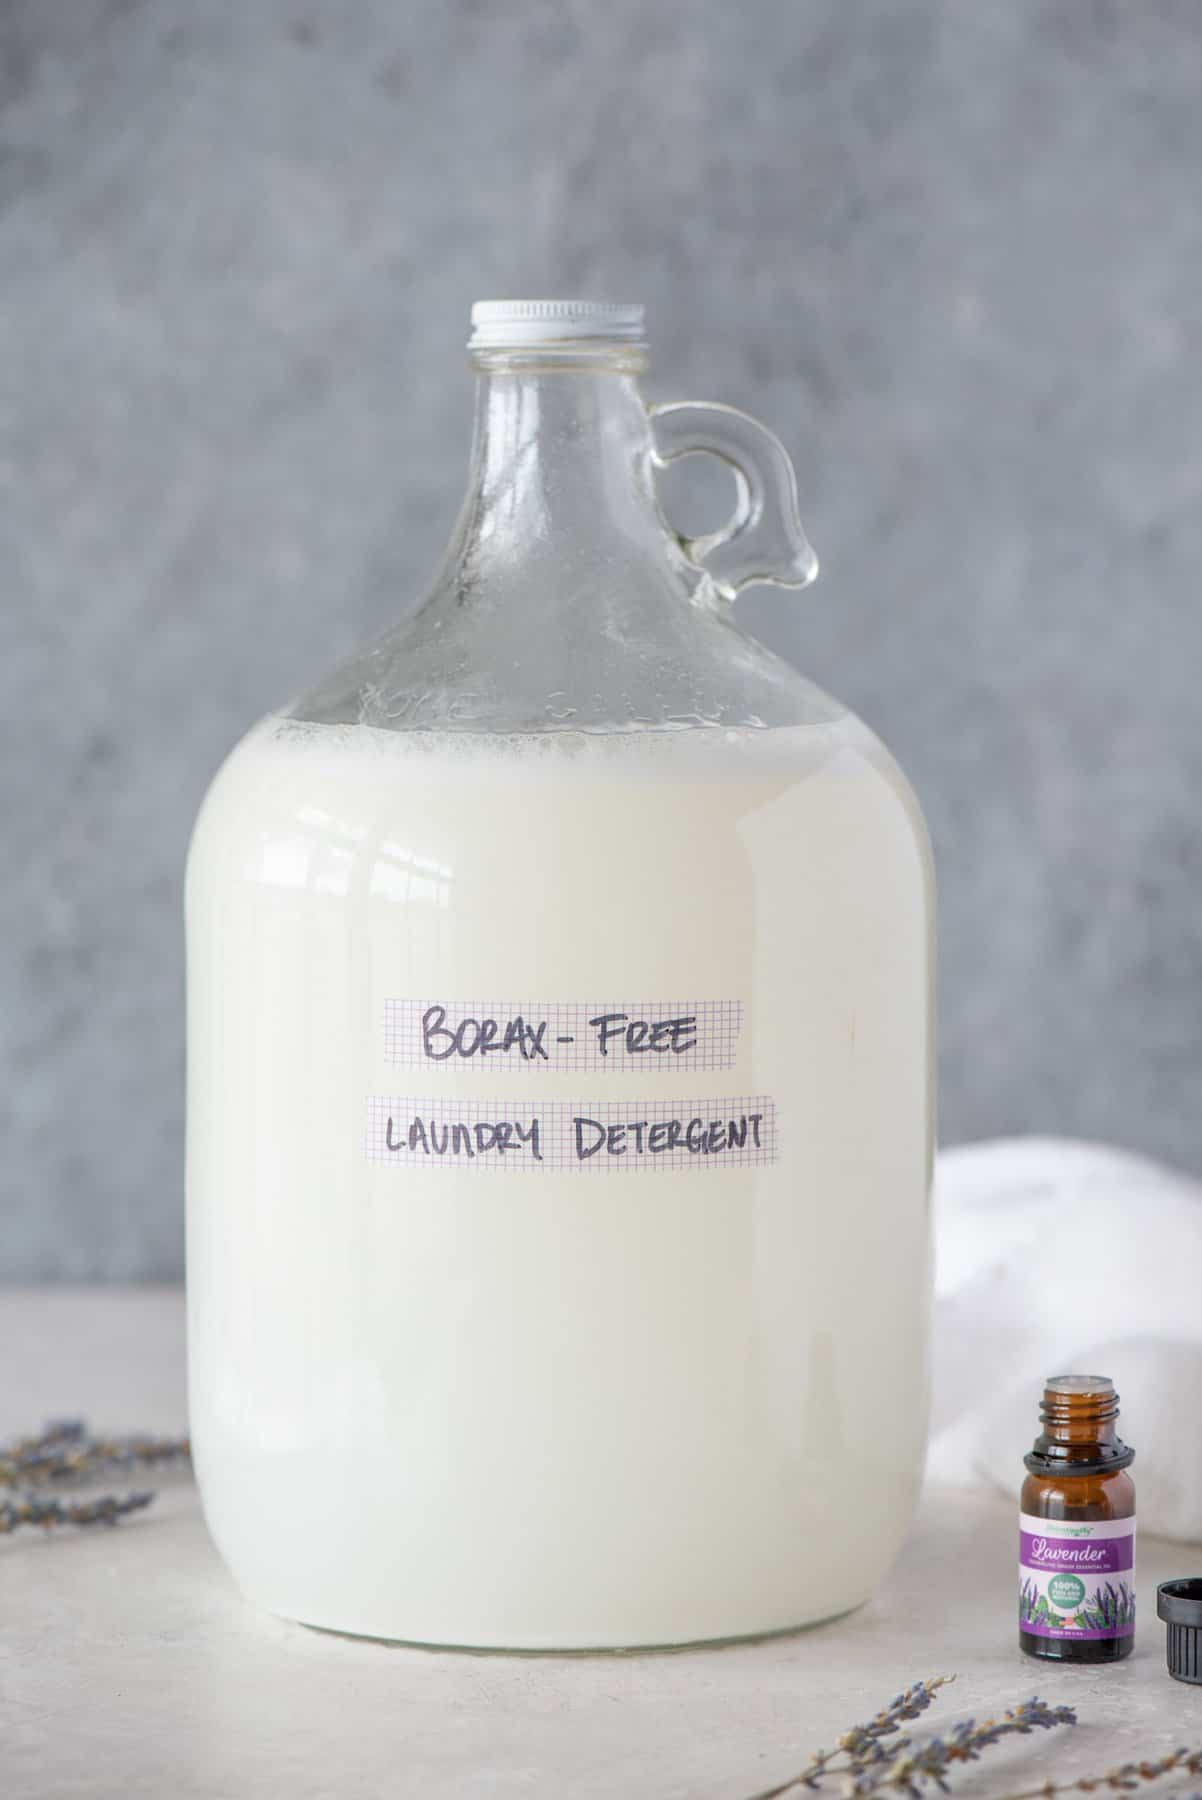 Glass bottle of Borax-Free Laundry Detergent